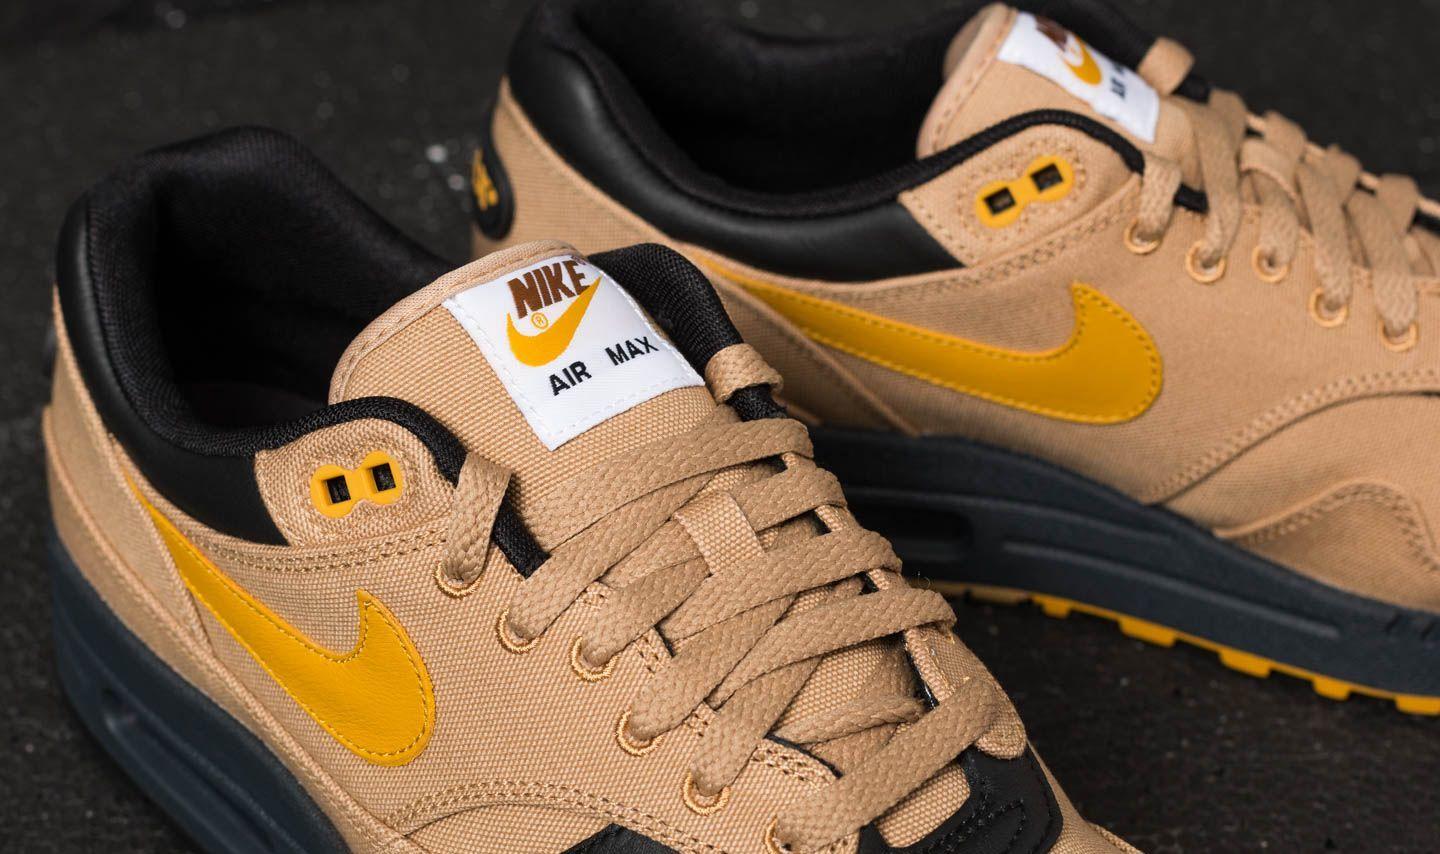 Nike Air Max 1 Premium (Elemental GoldMineral Yellow Black)